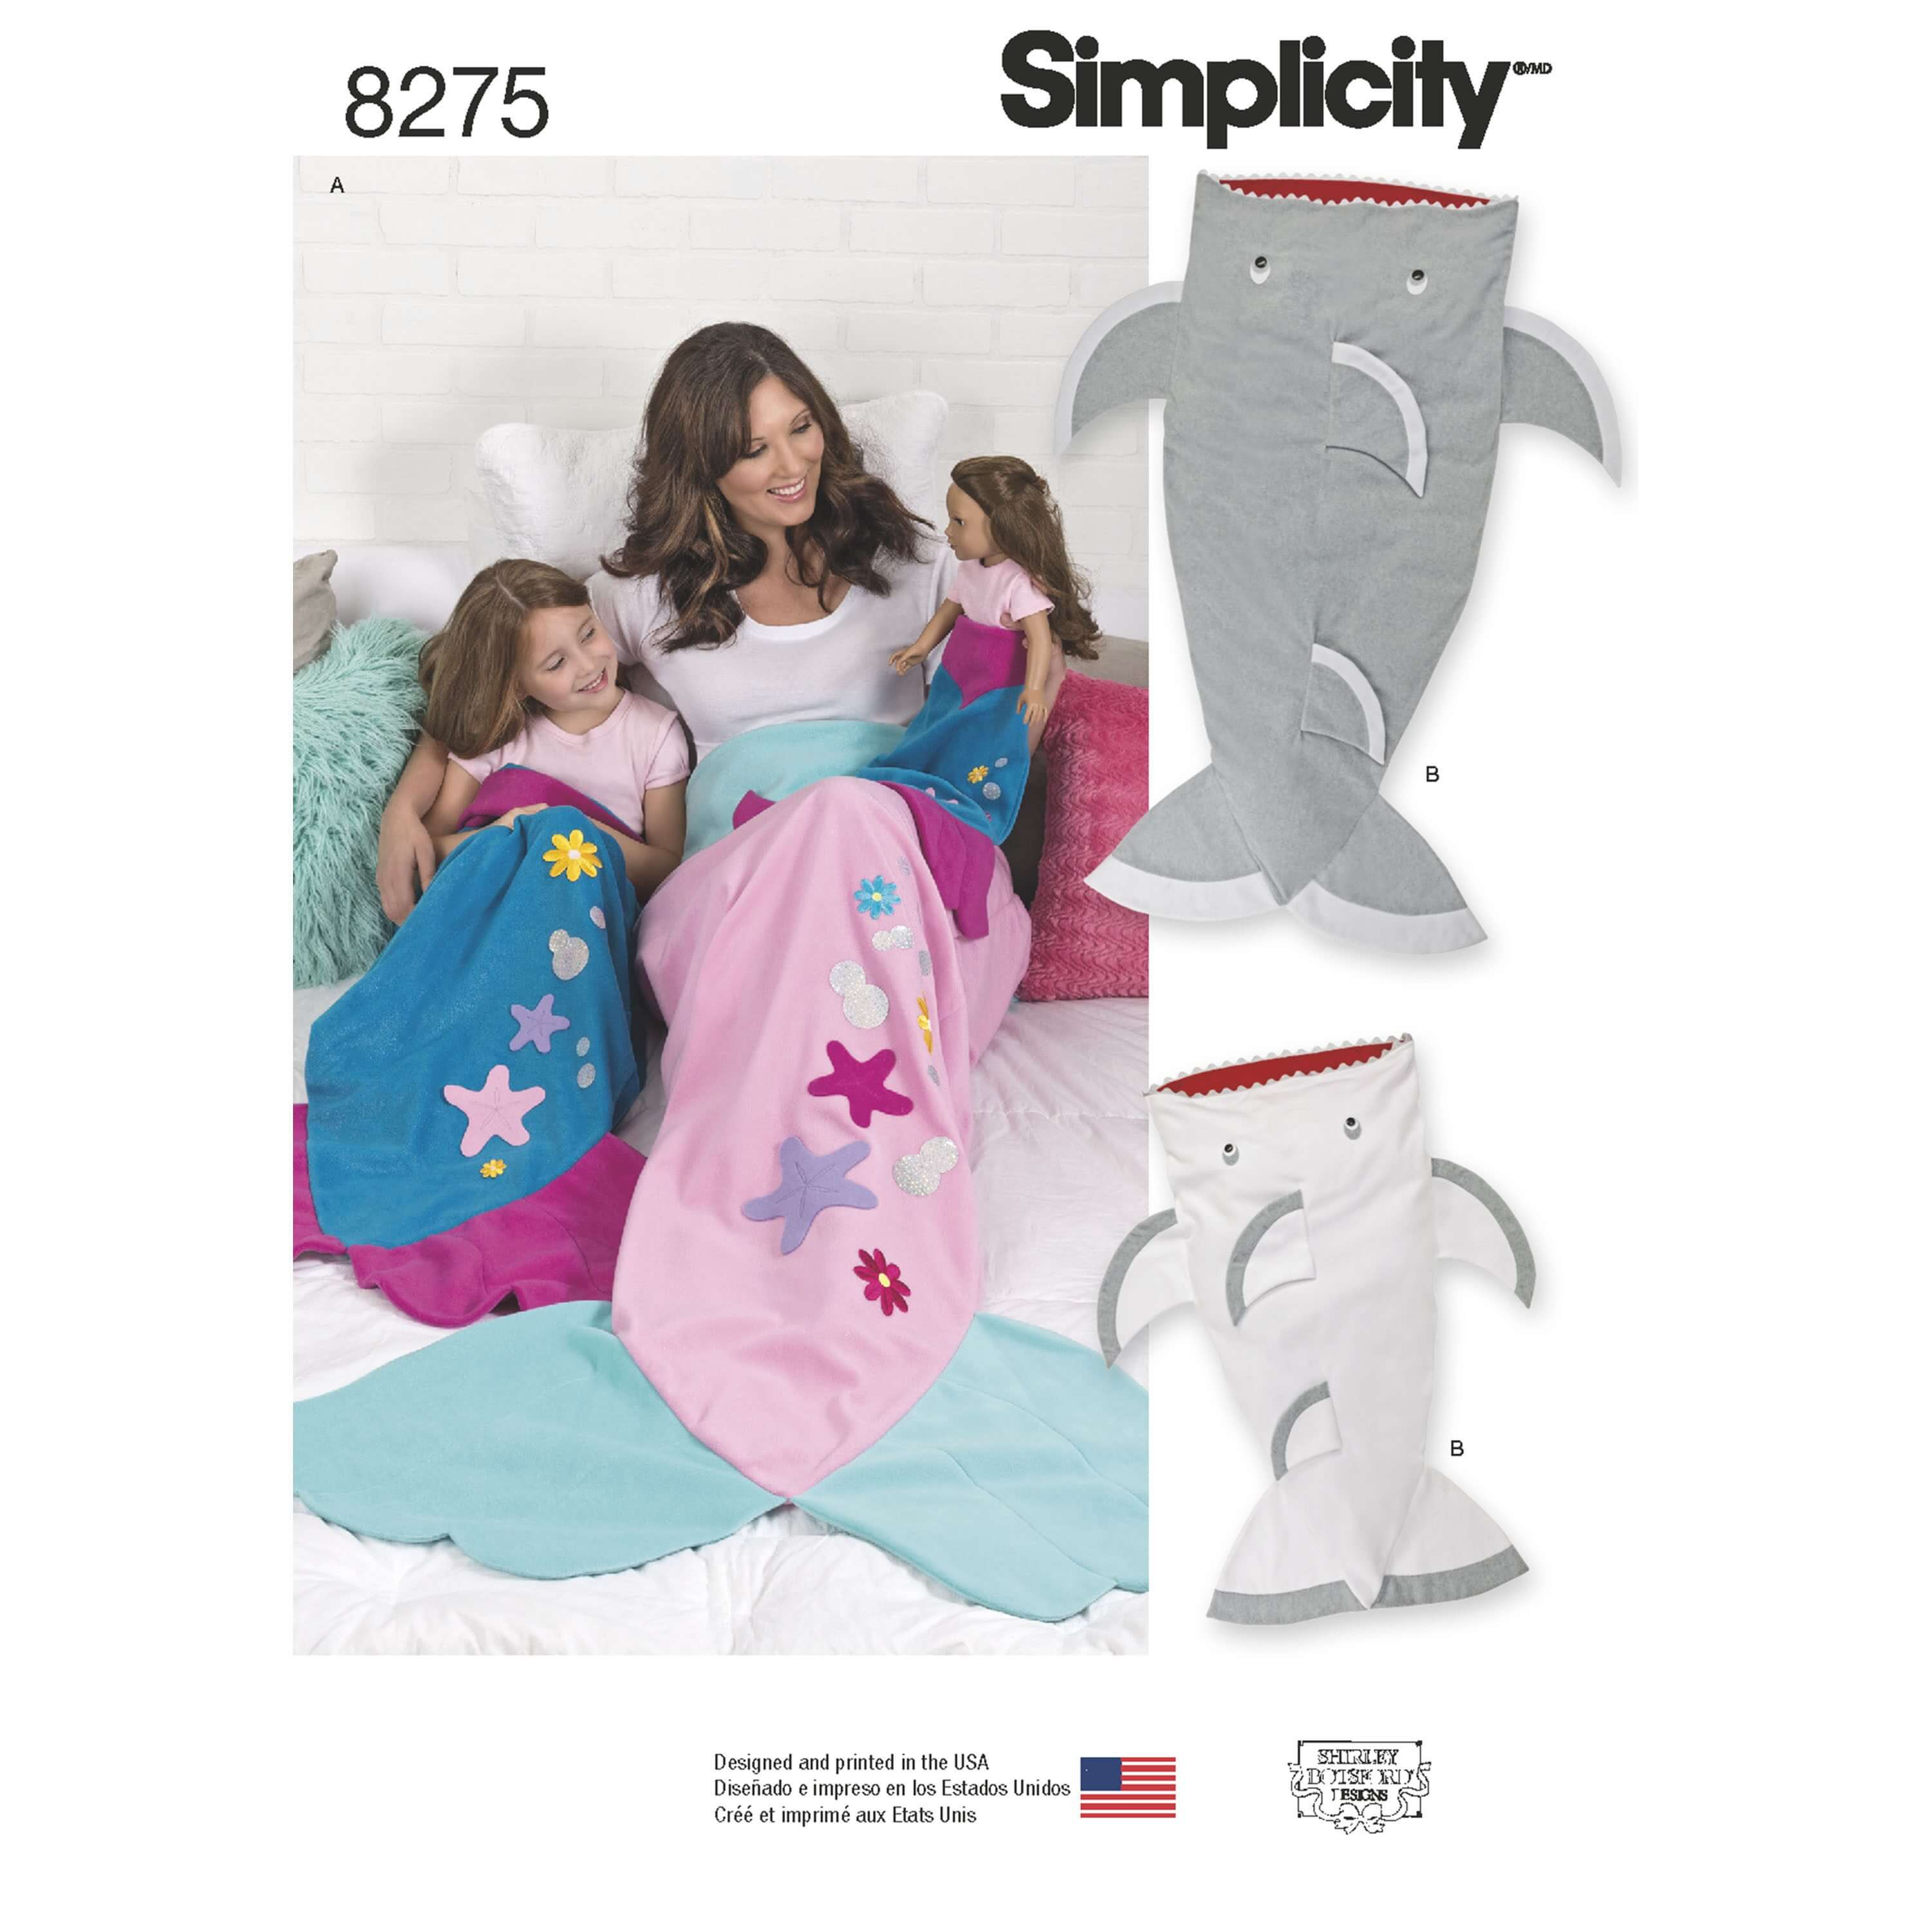 Simplicity Sewing Pattern 8275 Adult and Child Novelty Mermaid Shark Blankets